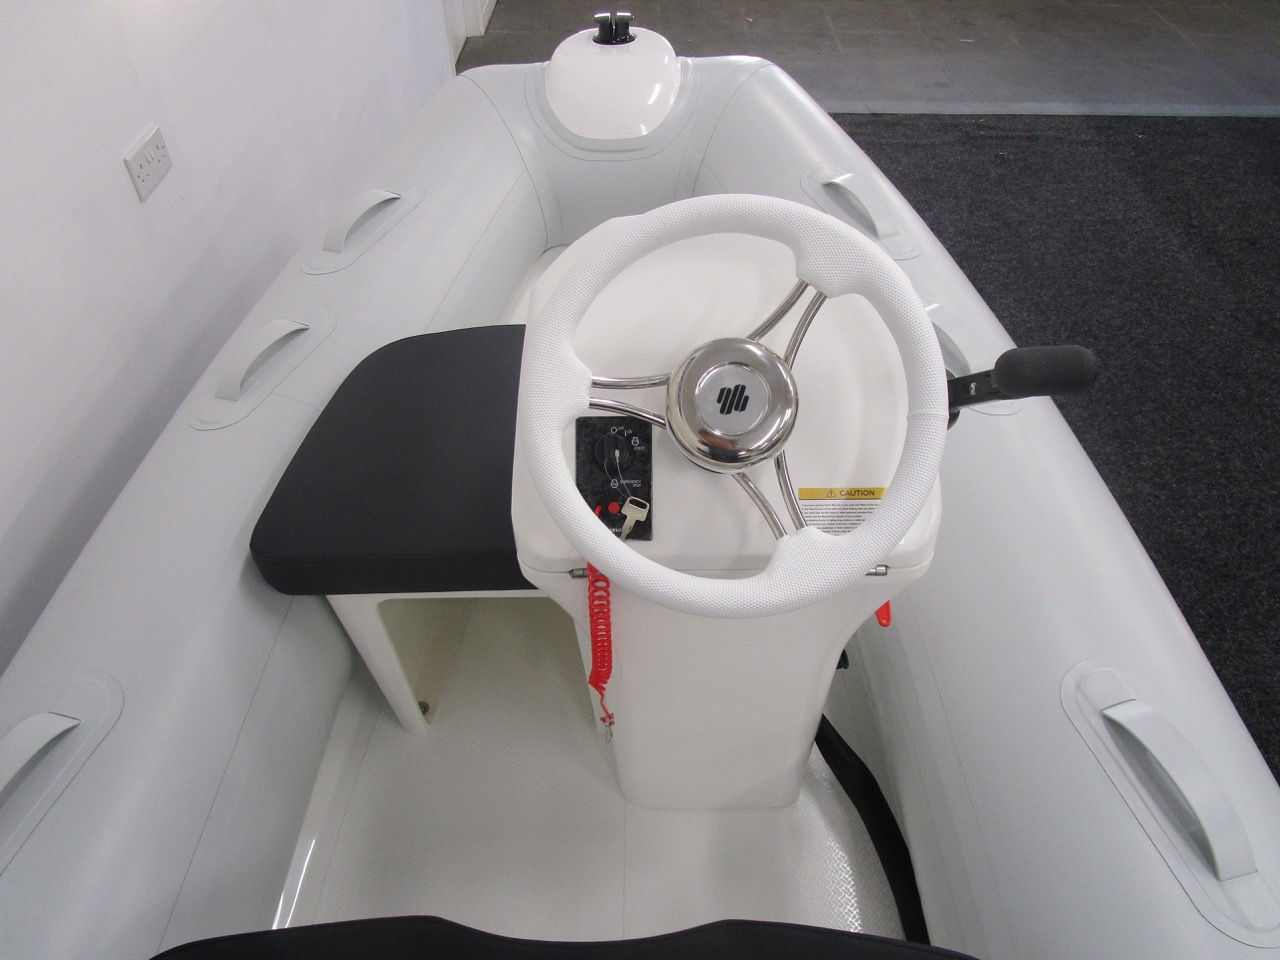 GRAND S330 RIB tender helm position and side seat